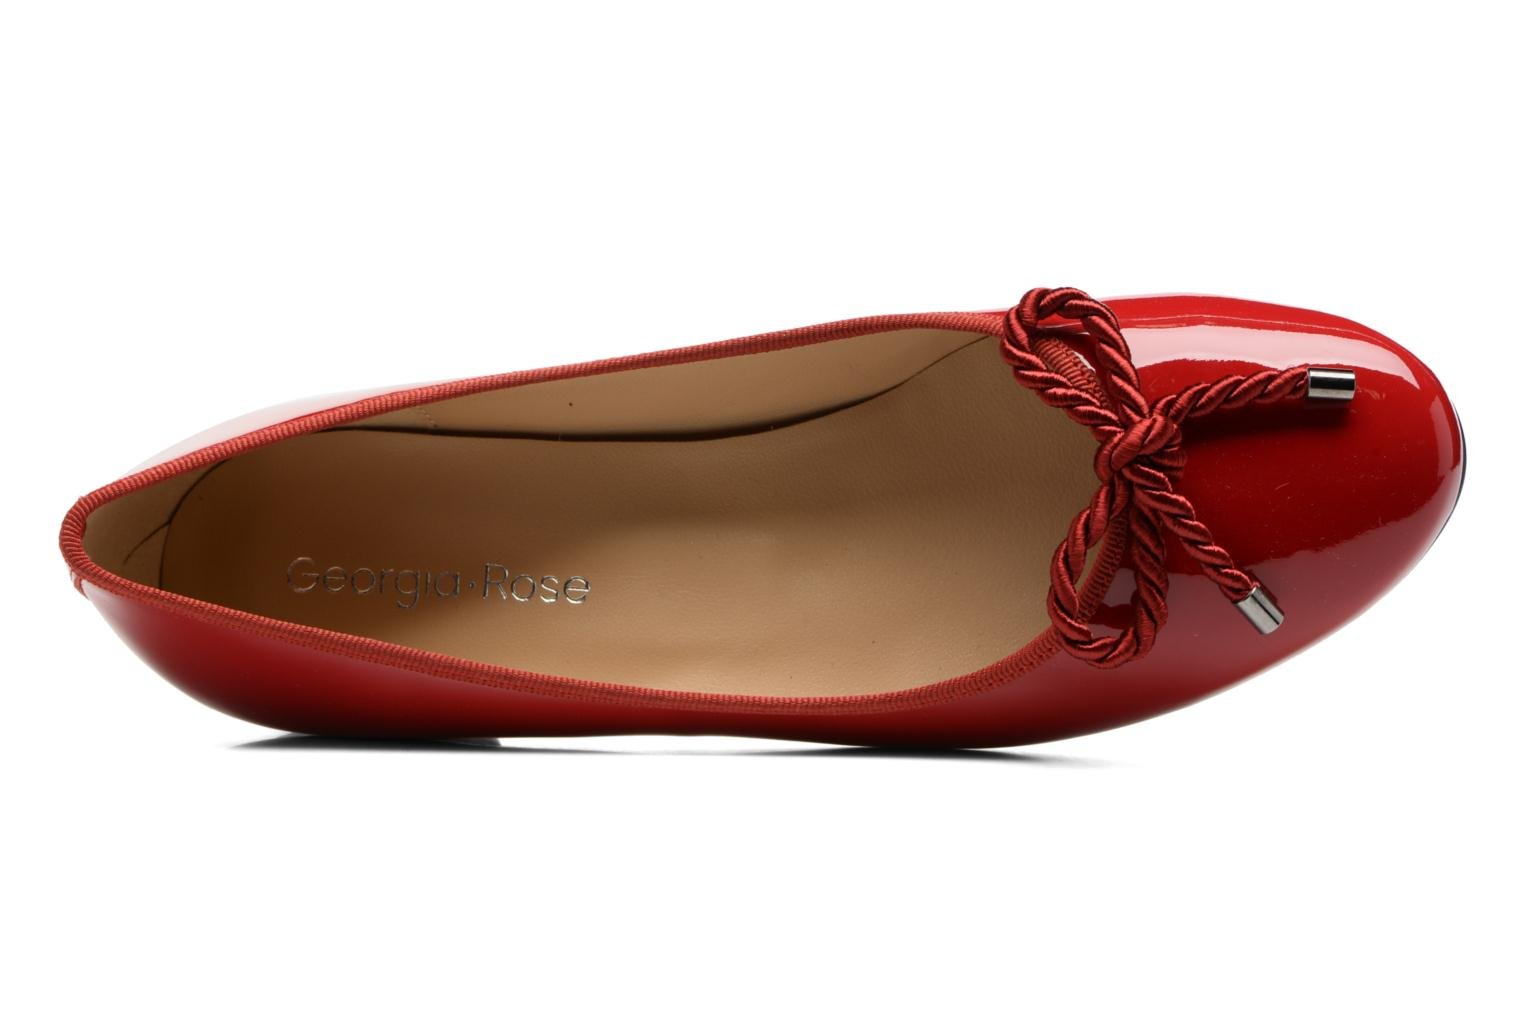 Sacouva cuir vernis rouge